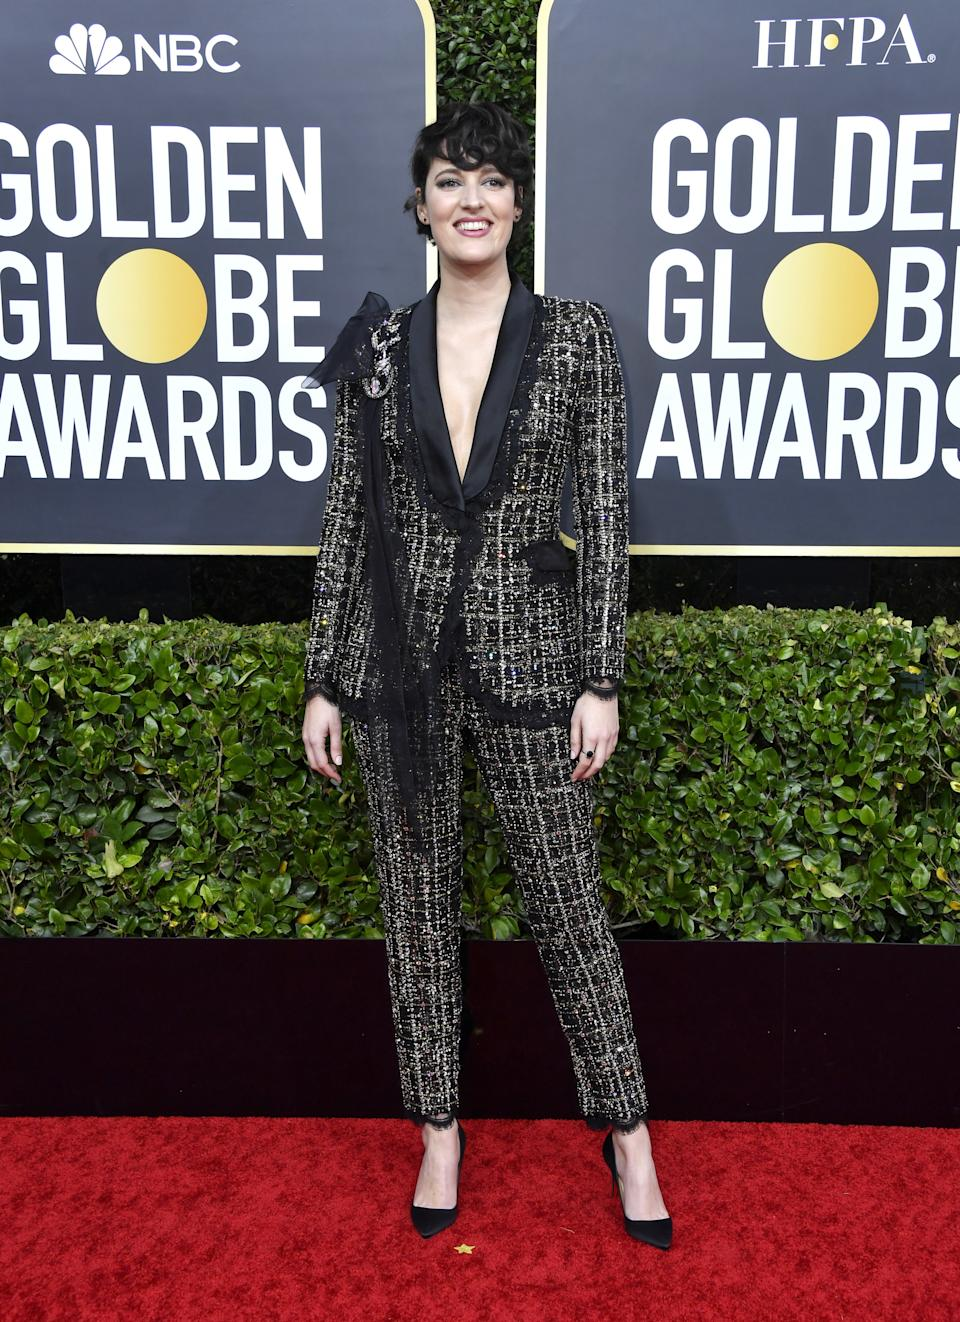 "<h1 class=""title"">Phoebe Waller-Bridge in Ralph & Russo, Christian Louboutin shoes, and Irene Neuwirth jewelry</h1><cite class=""credit"">Photo: Getty Images</cite>"